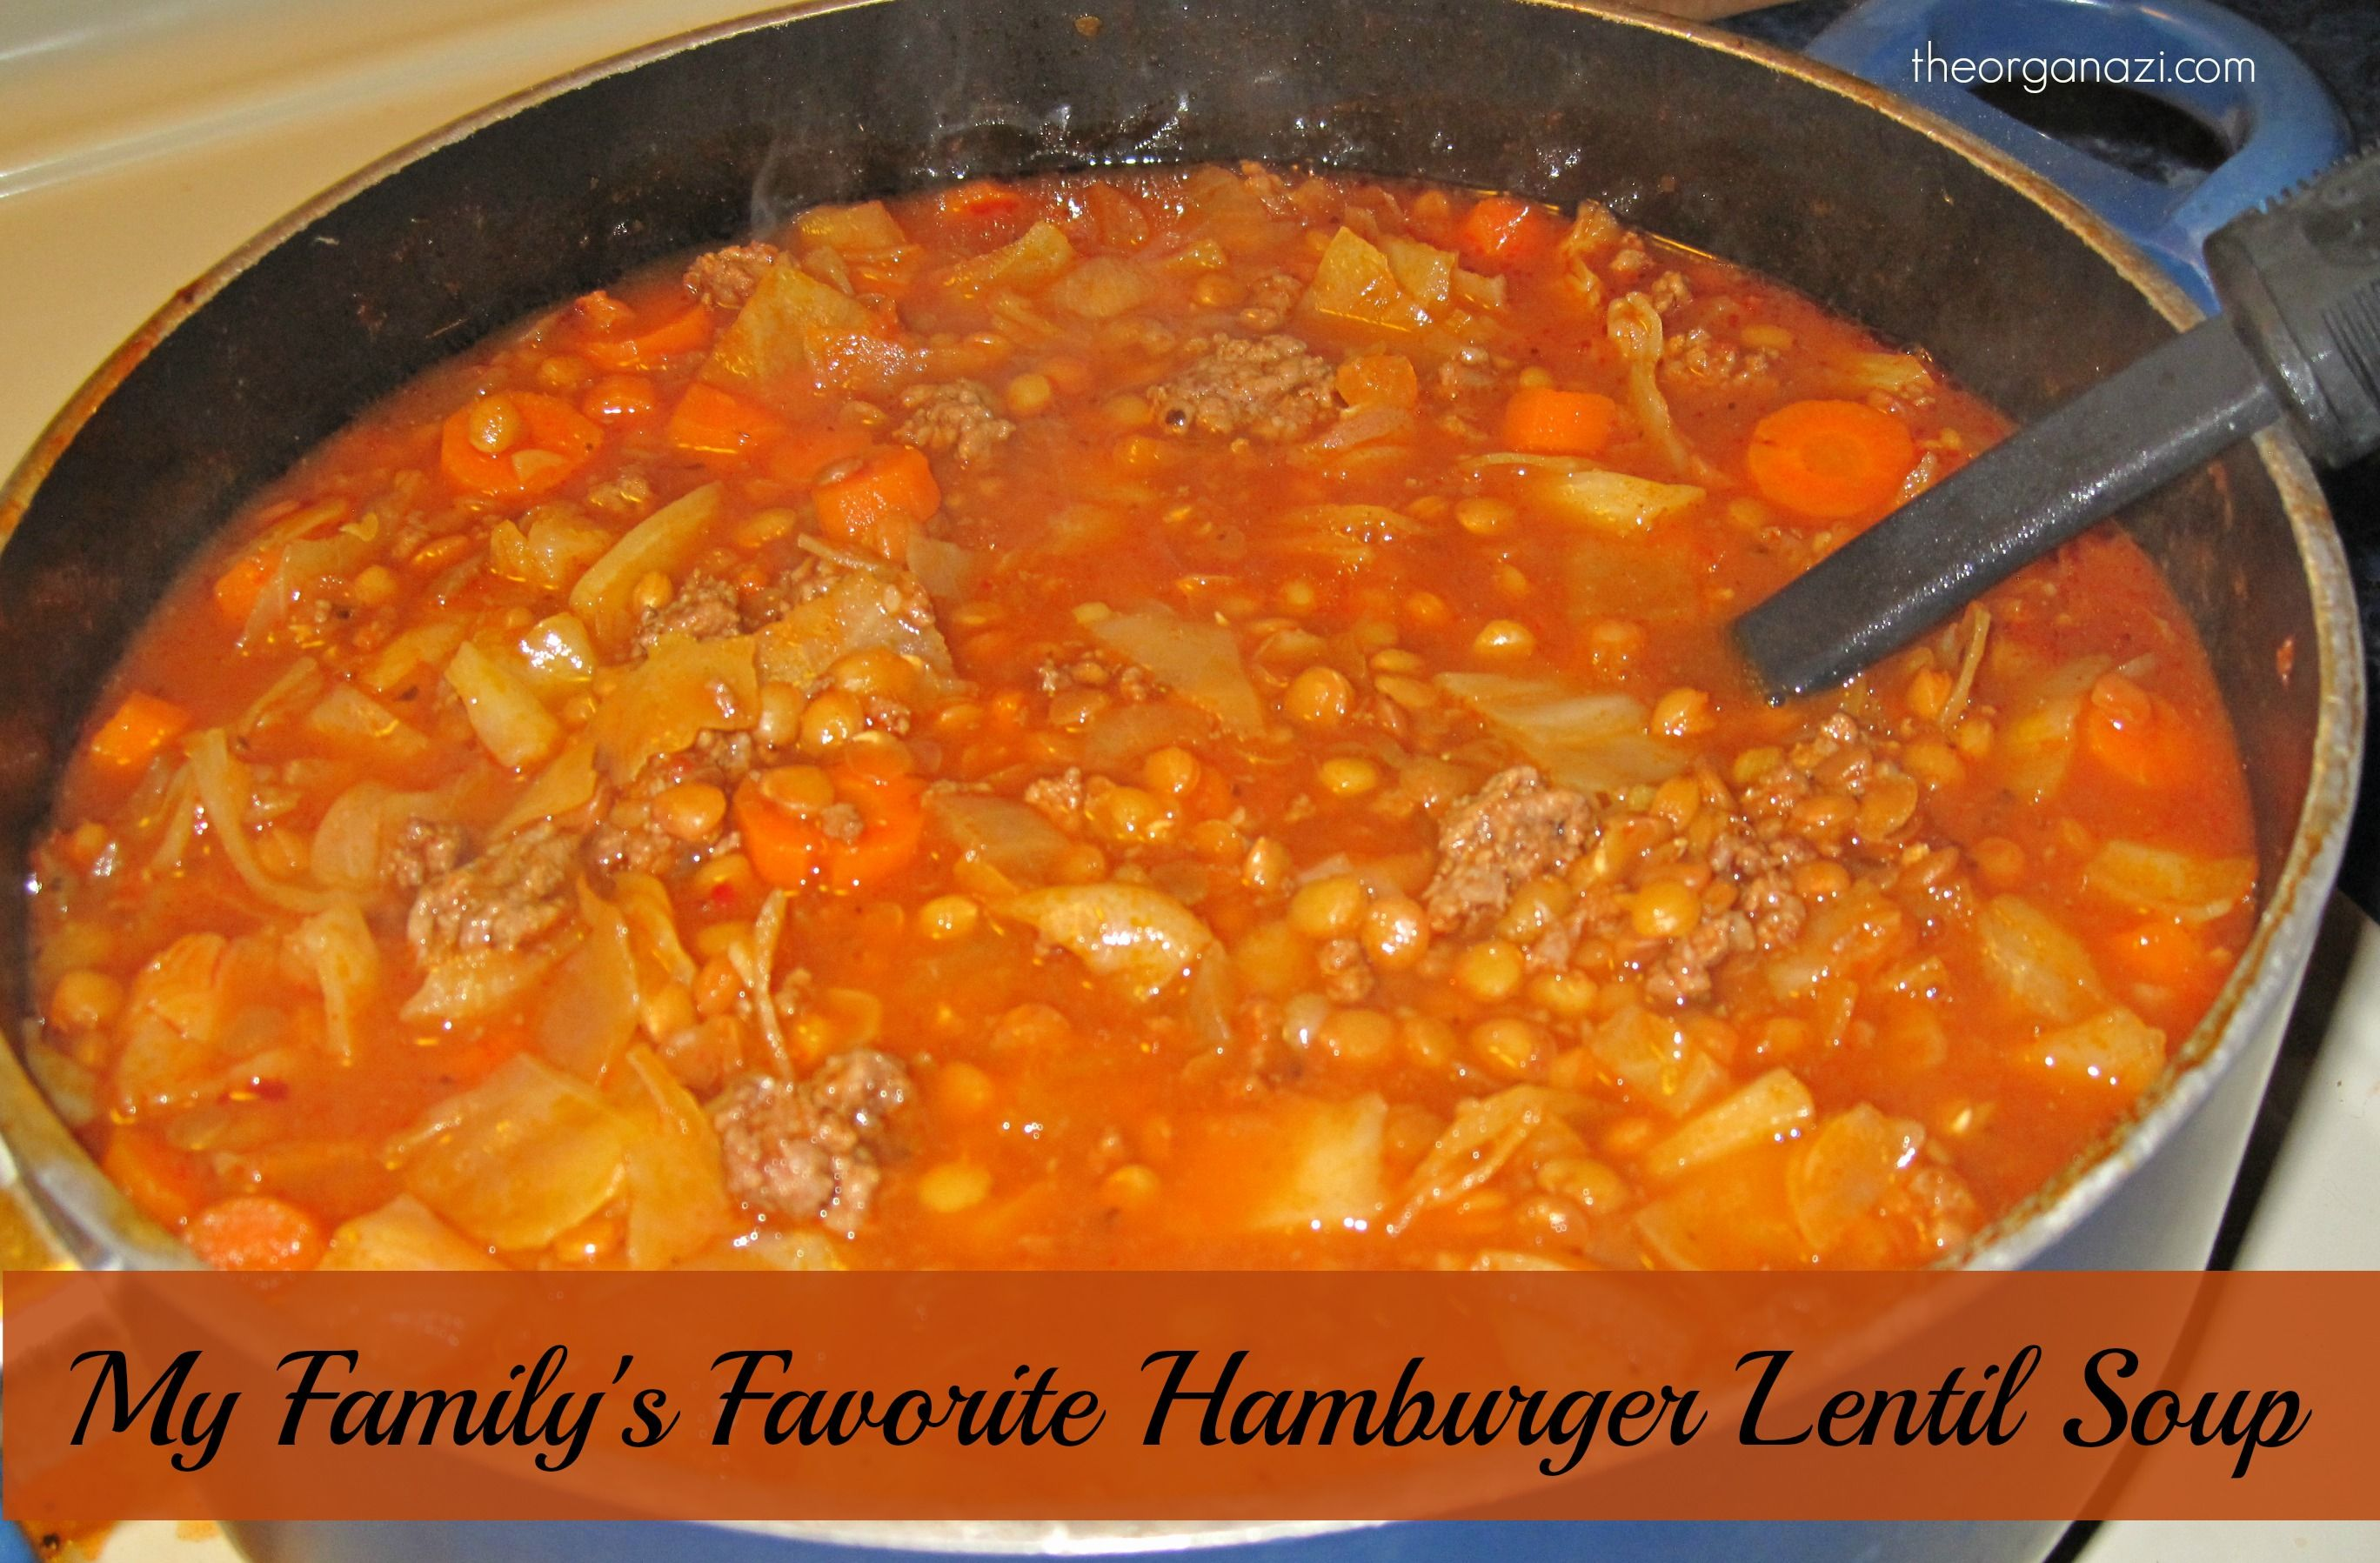 Family Favorite Hamburger Lentil Soup